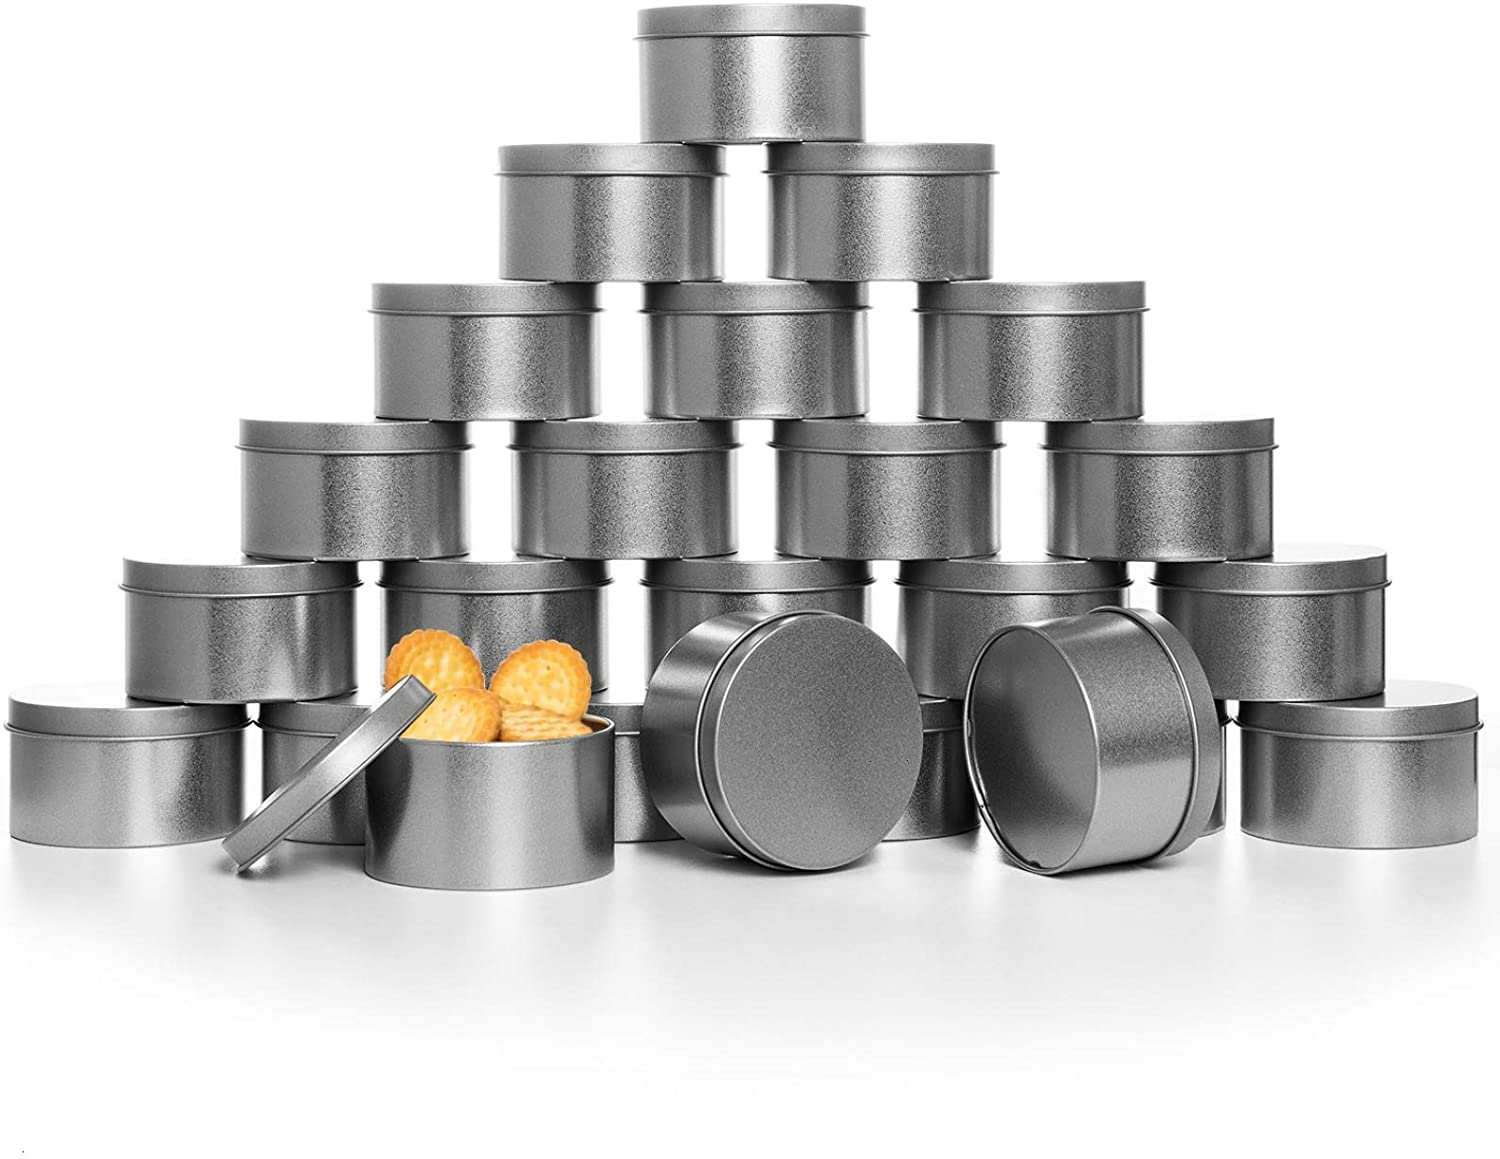 COYMOS Candle Tins, 24 Piece, 4 oz Metal Candle Containers for Making Candles, Arts & Crafts, Dry Storage, Party Favors and More - Round Tin with Slip-On Lids (2.5 x 1.7 inch, Silver)